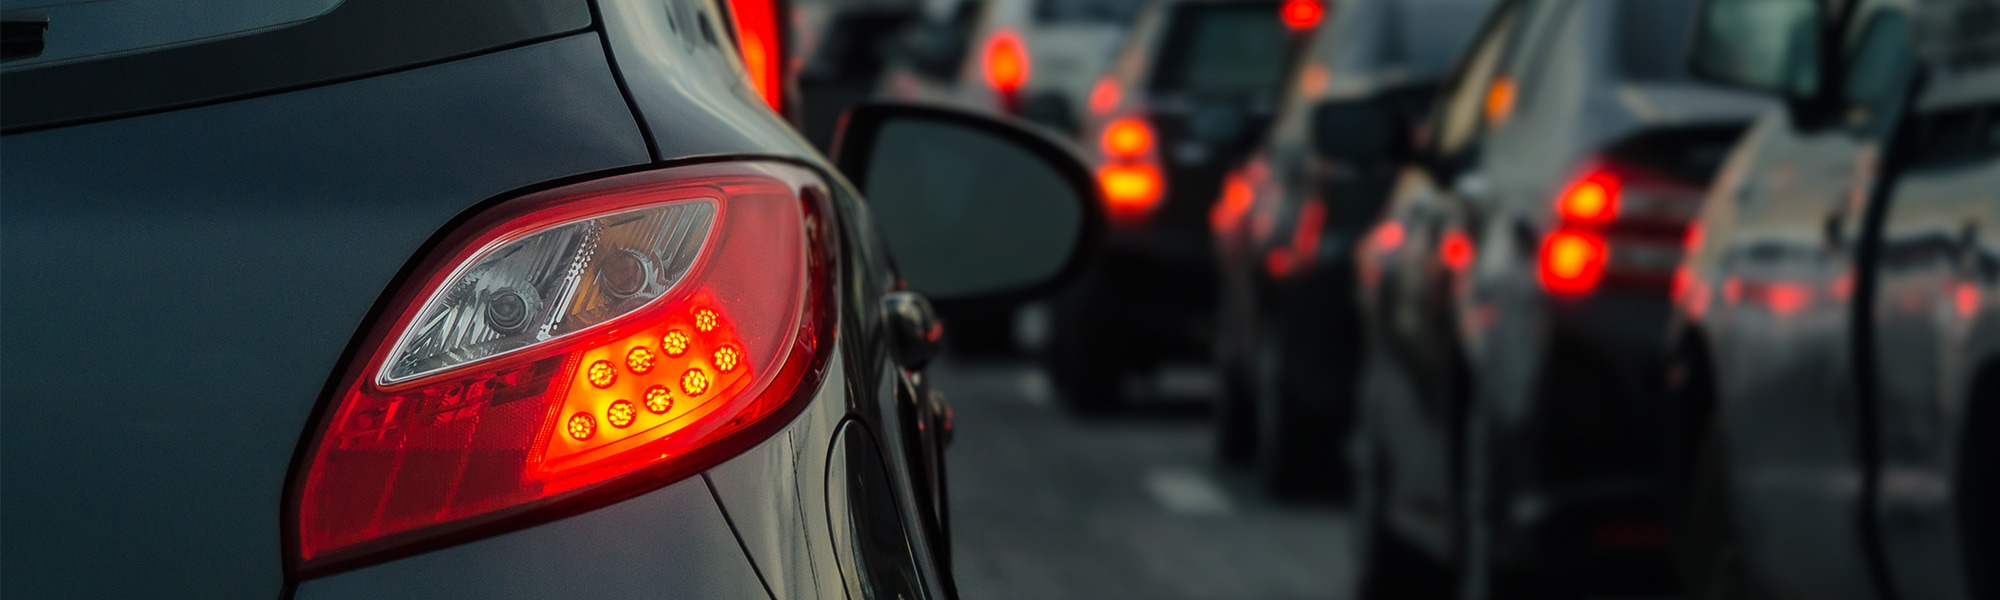 The TomTom Traffic Index: an objective measure of urban traffic congestion